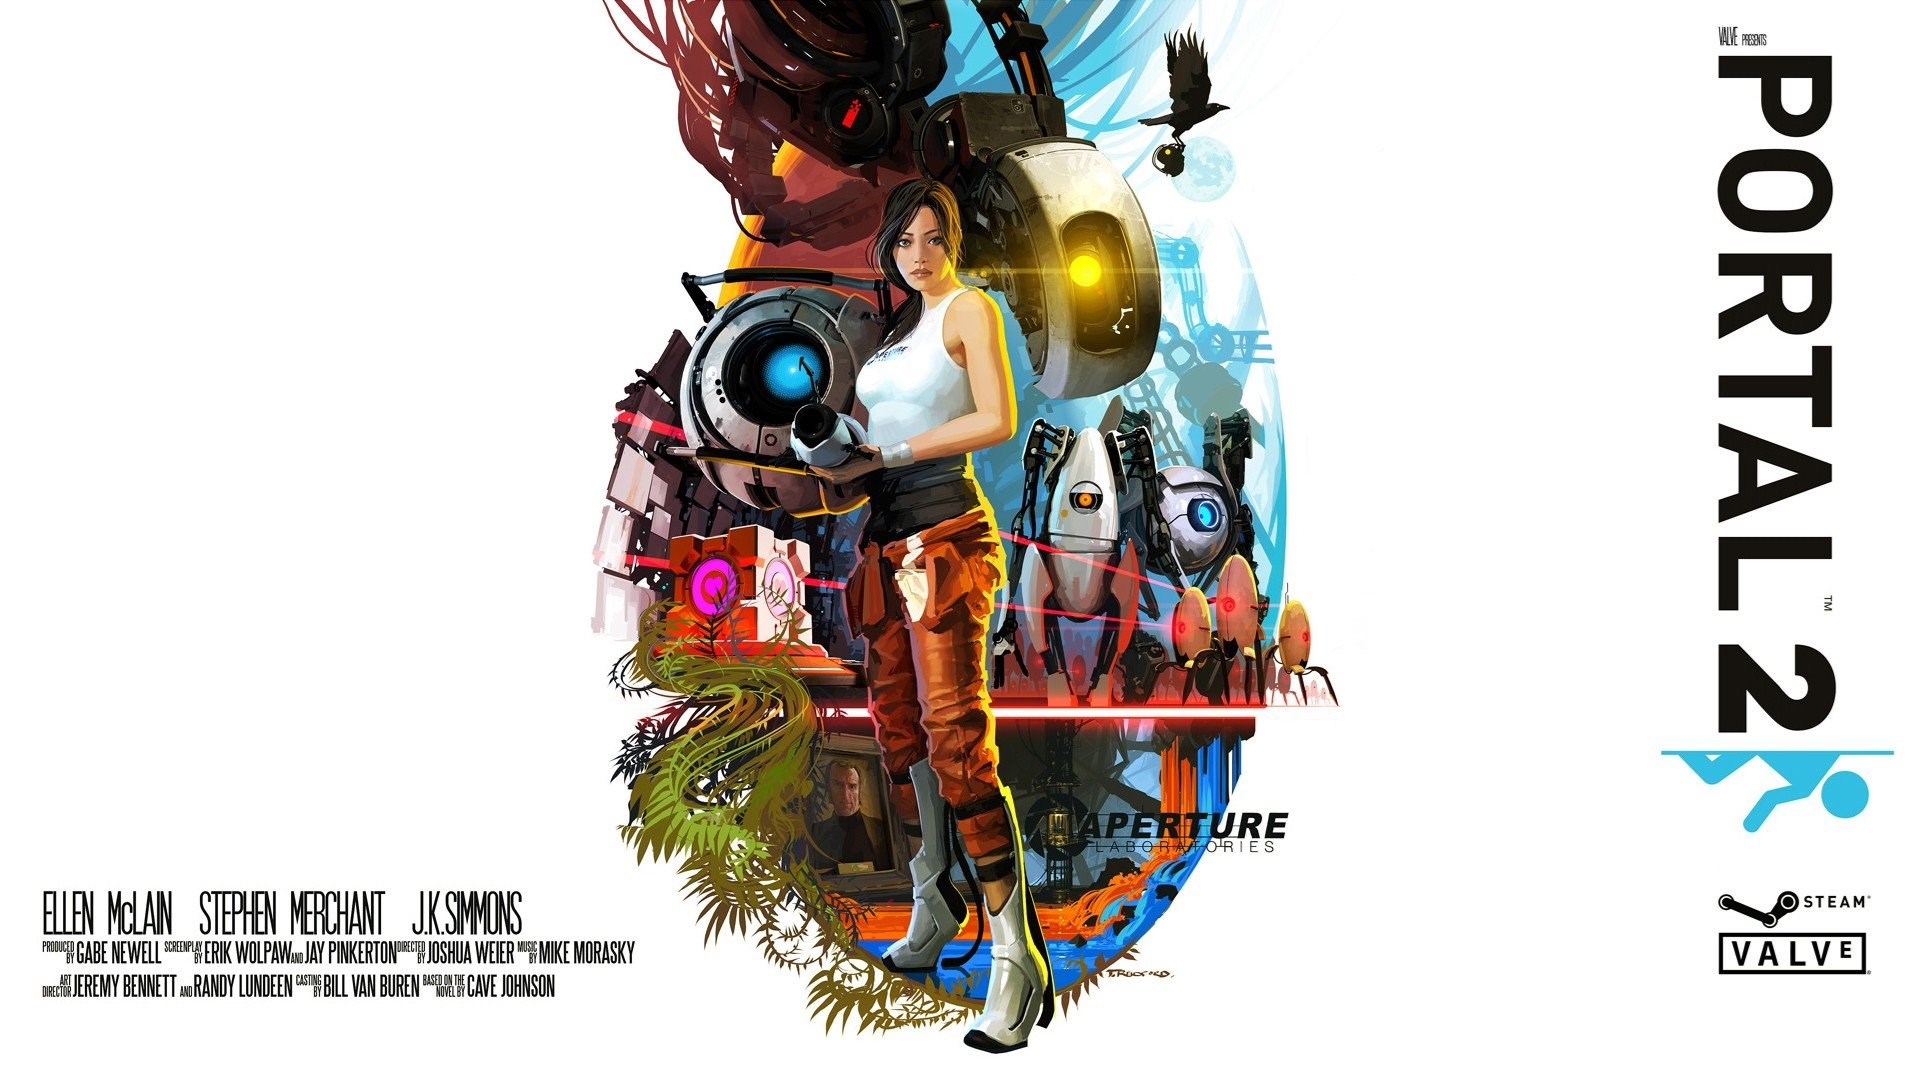 Download The Portal 2 By Valve Wallpaper Portal 2 By Valve Iphone